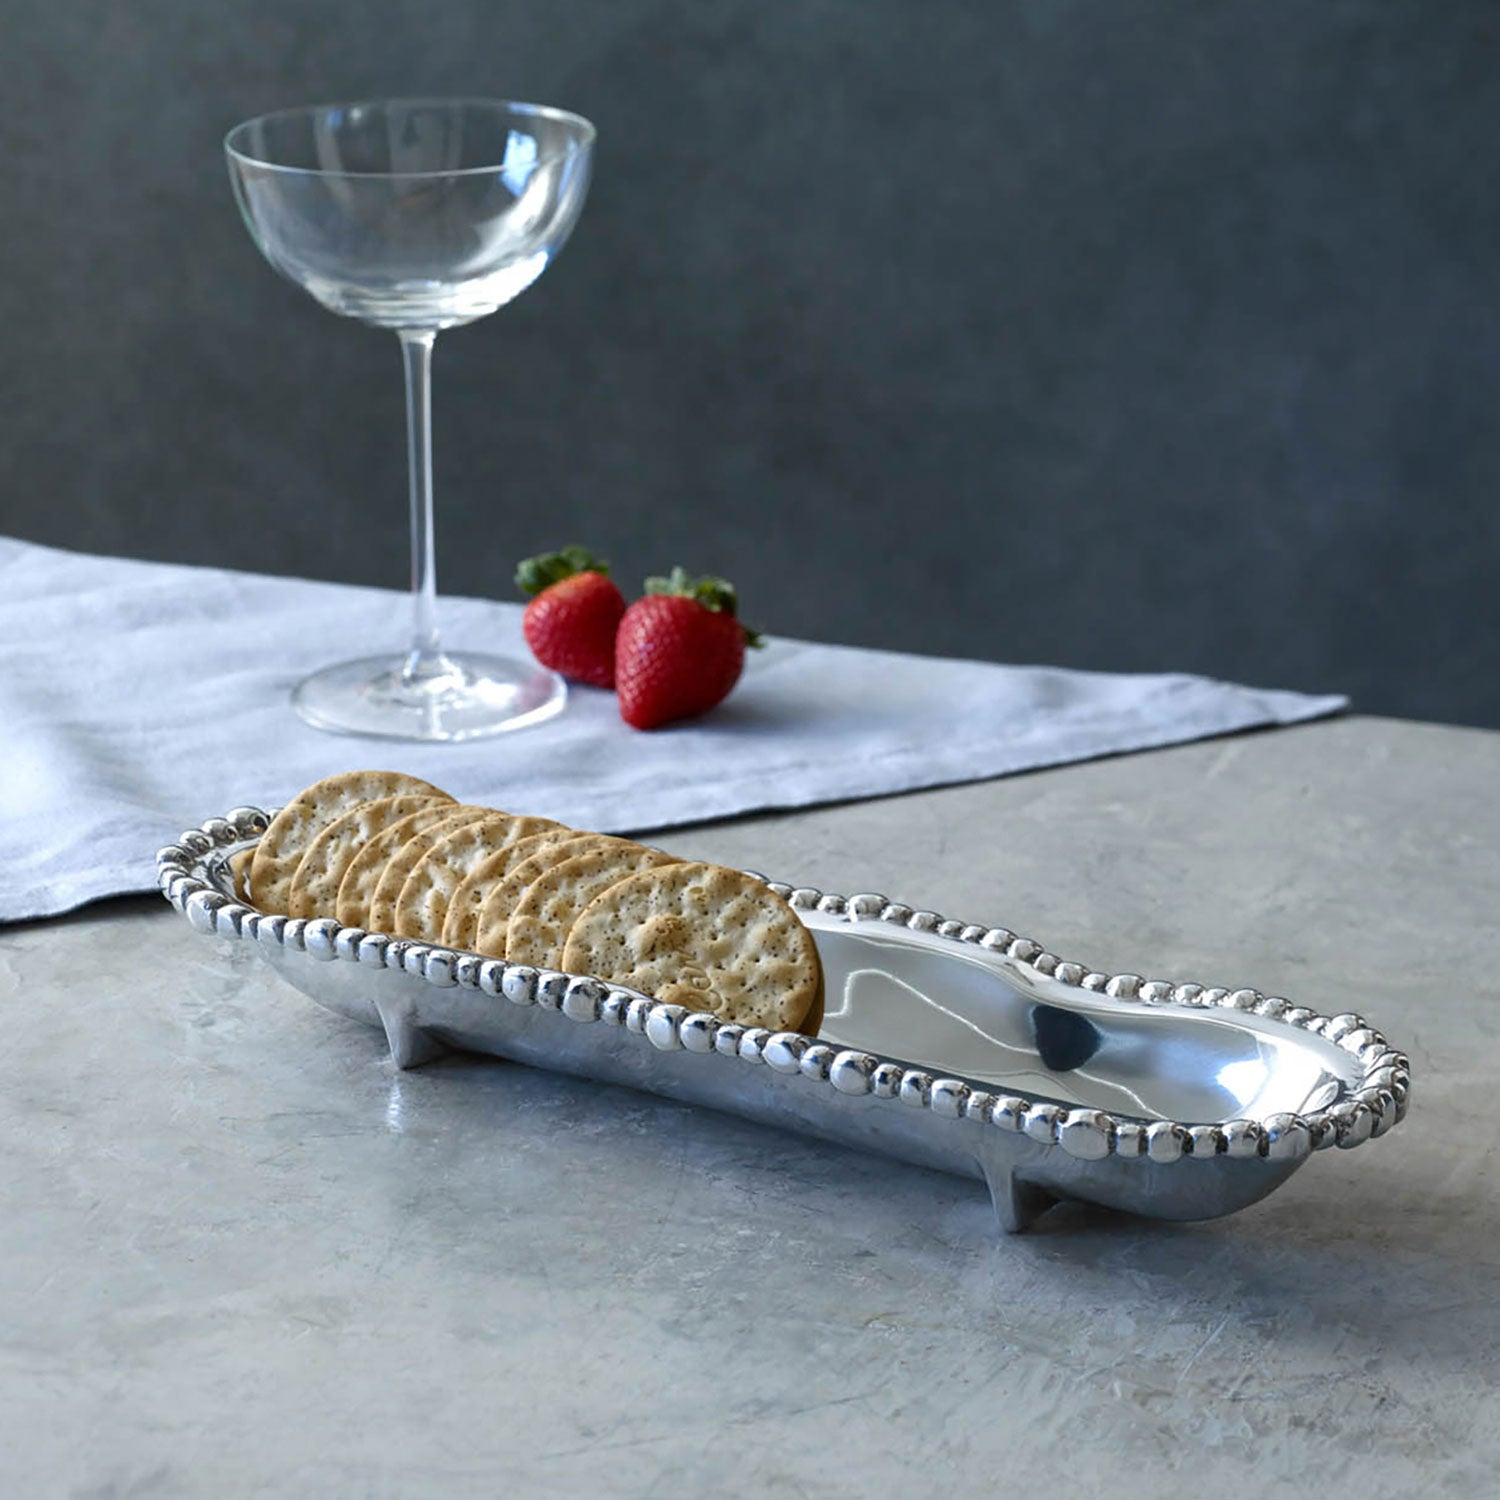 ORGANIC PEARL Cracker Tray